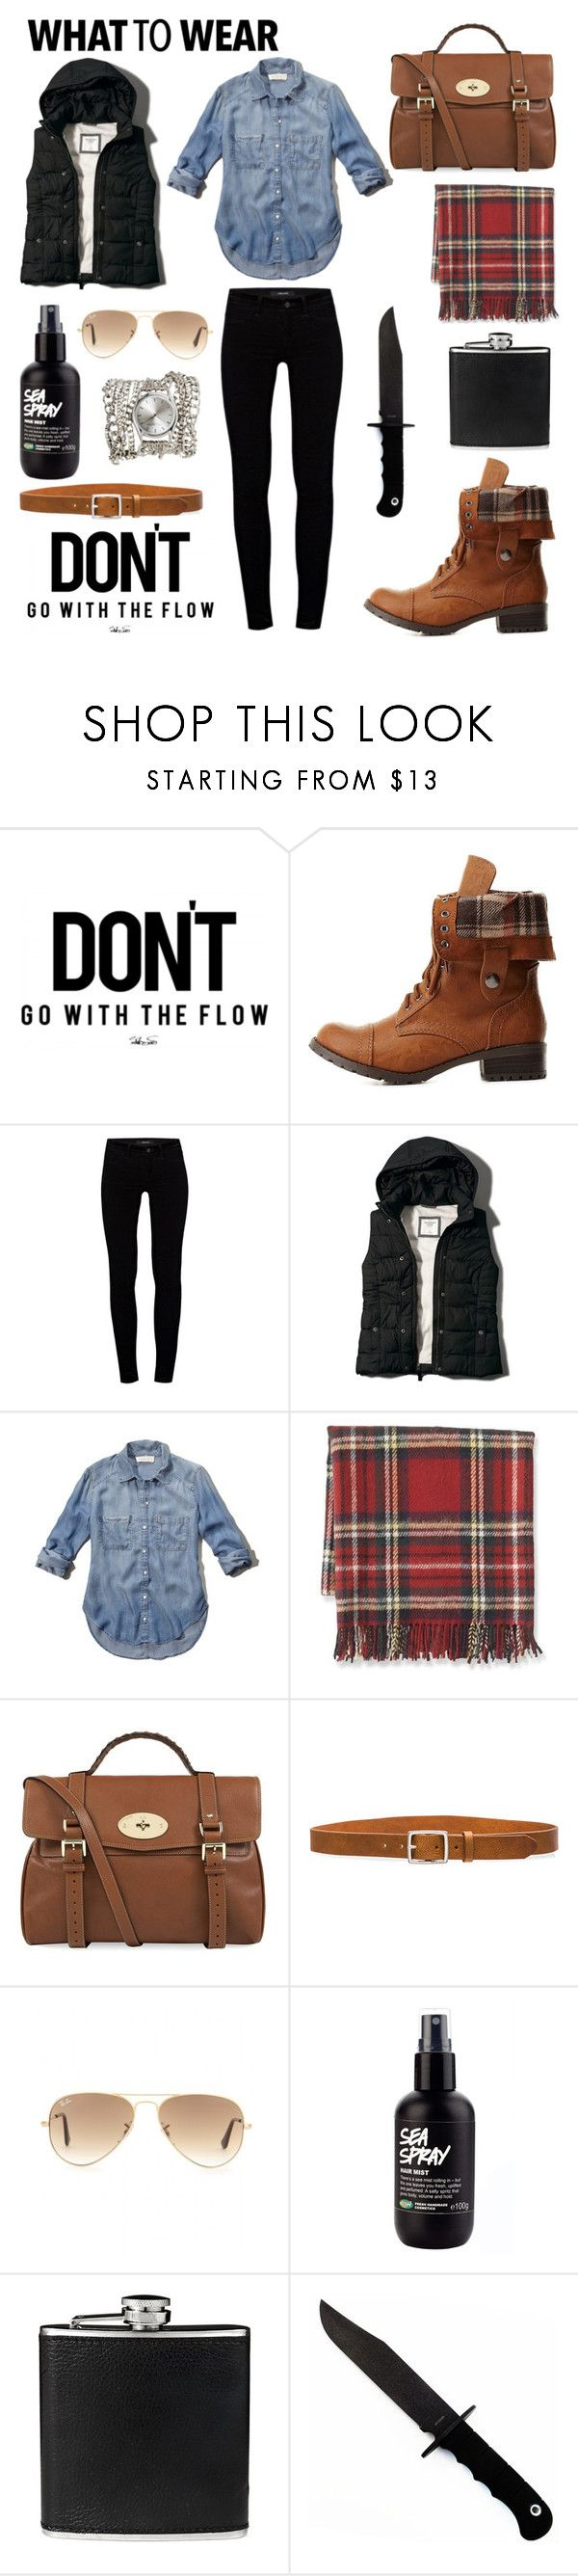 """Black Friday"" by modernandsmash ❤ liked on Polyvore featuring Charlotte Russe, J Brand, Abercrombie & Fitch, Williams-Sonoma, Mulberry, rag & bone, Ray-Ban, BLACK BROWN 1826, Sara Designs and shoptilyoudrop"